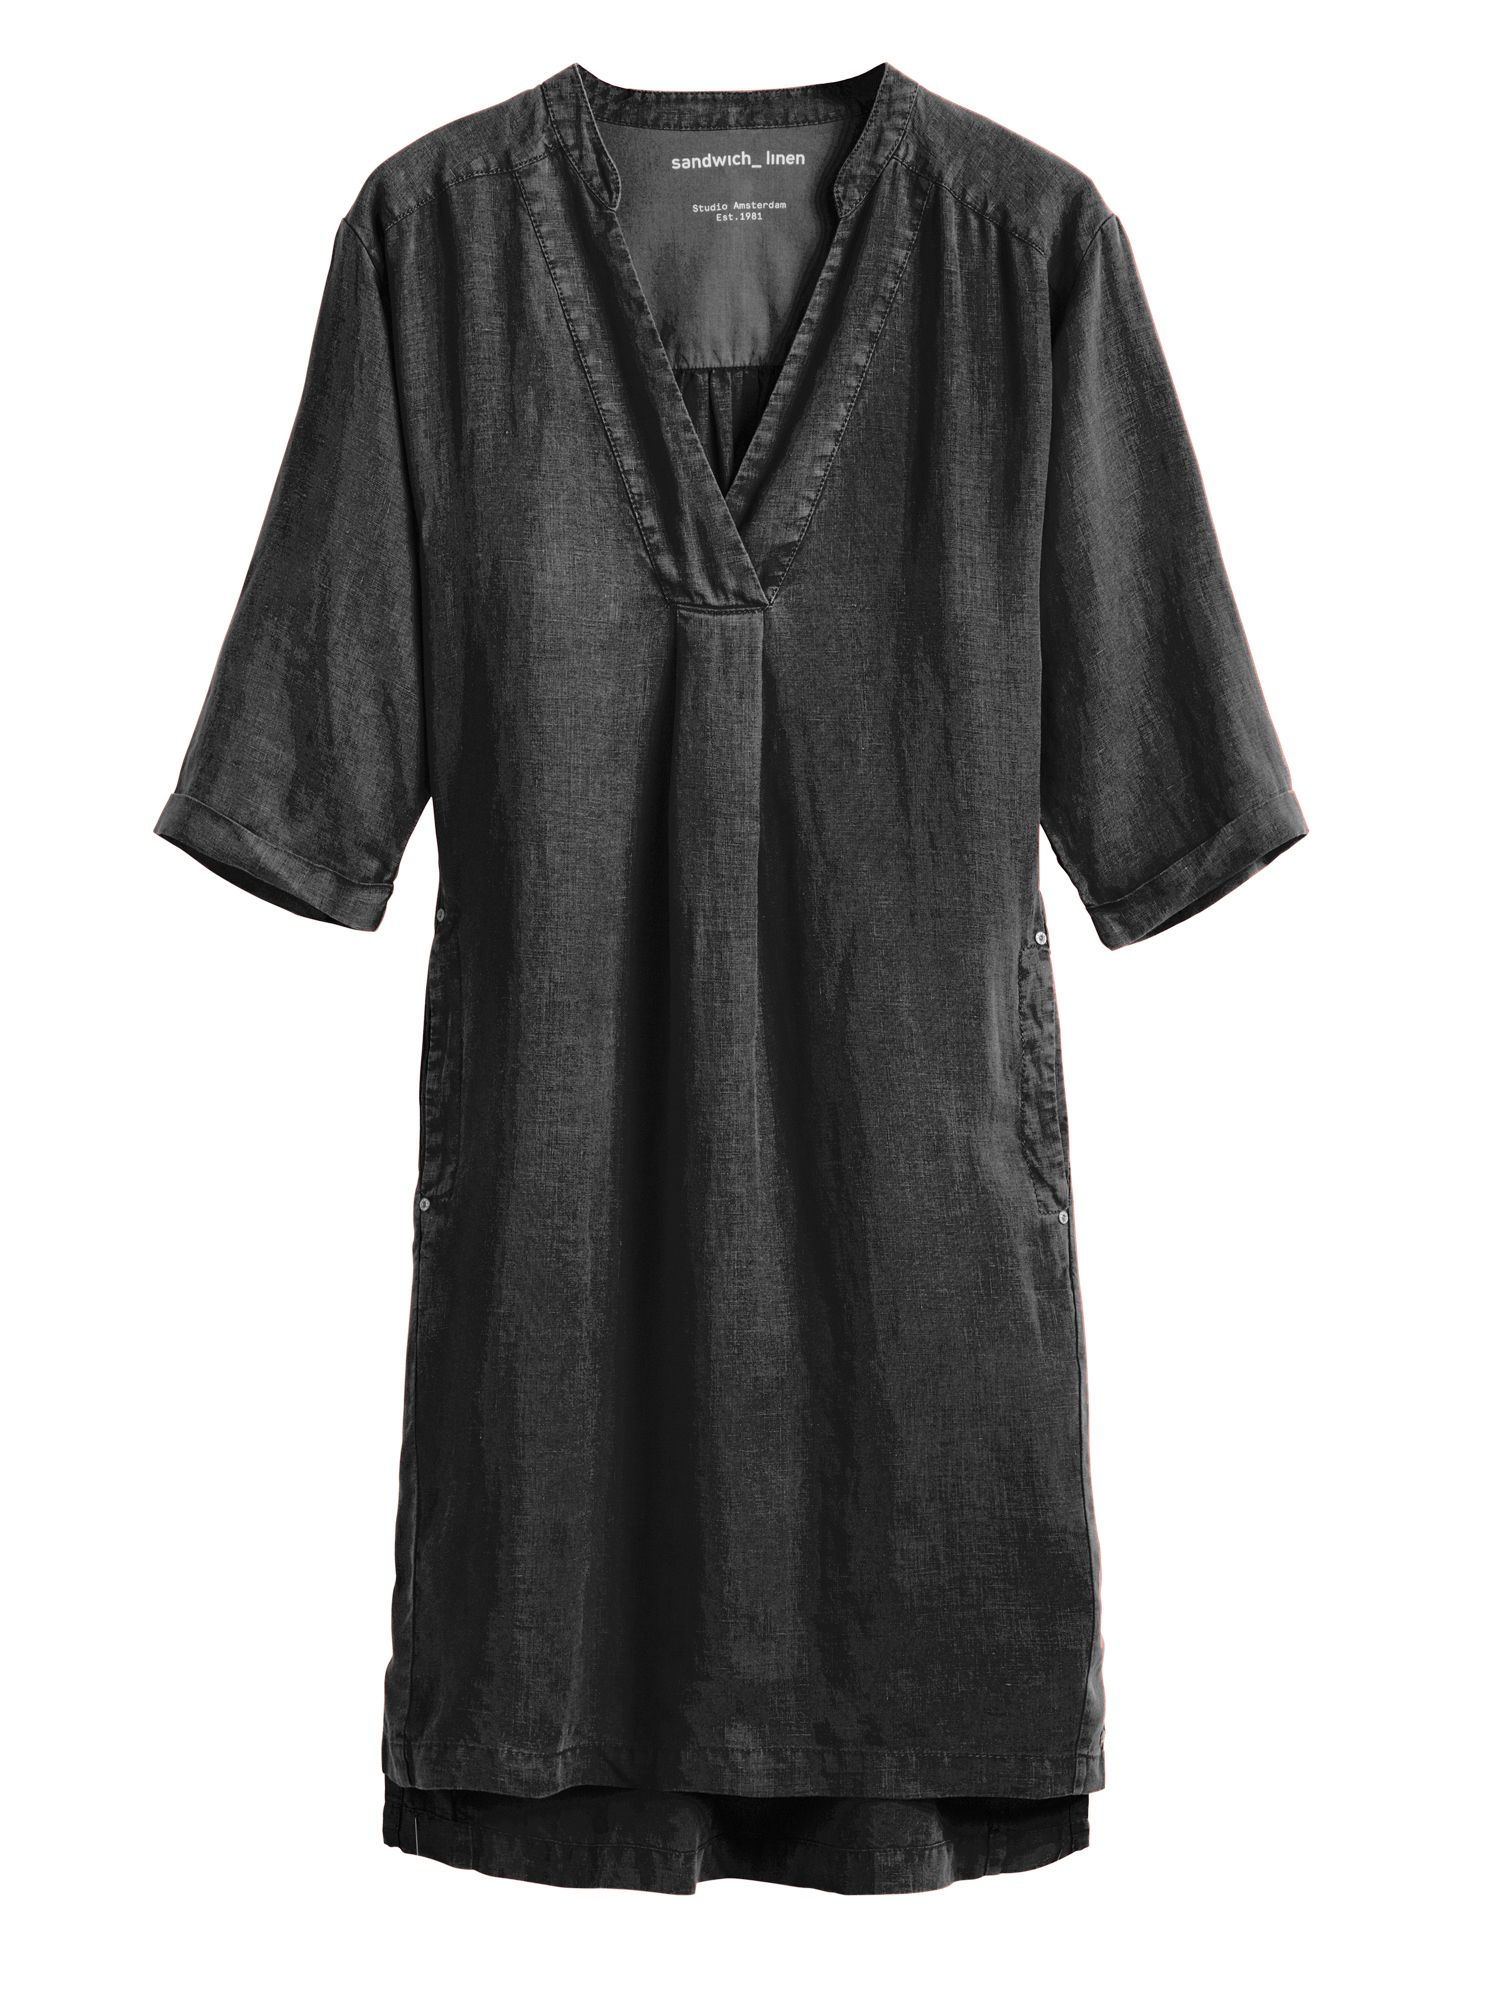 Sandwich Pure linen dress, Black